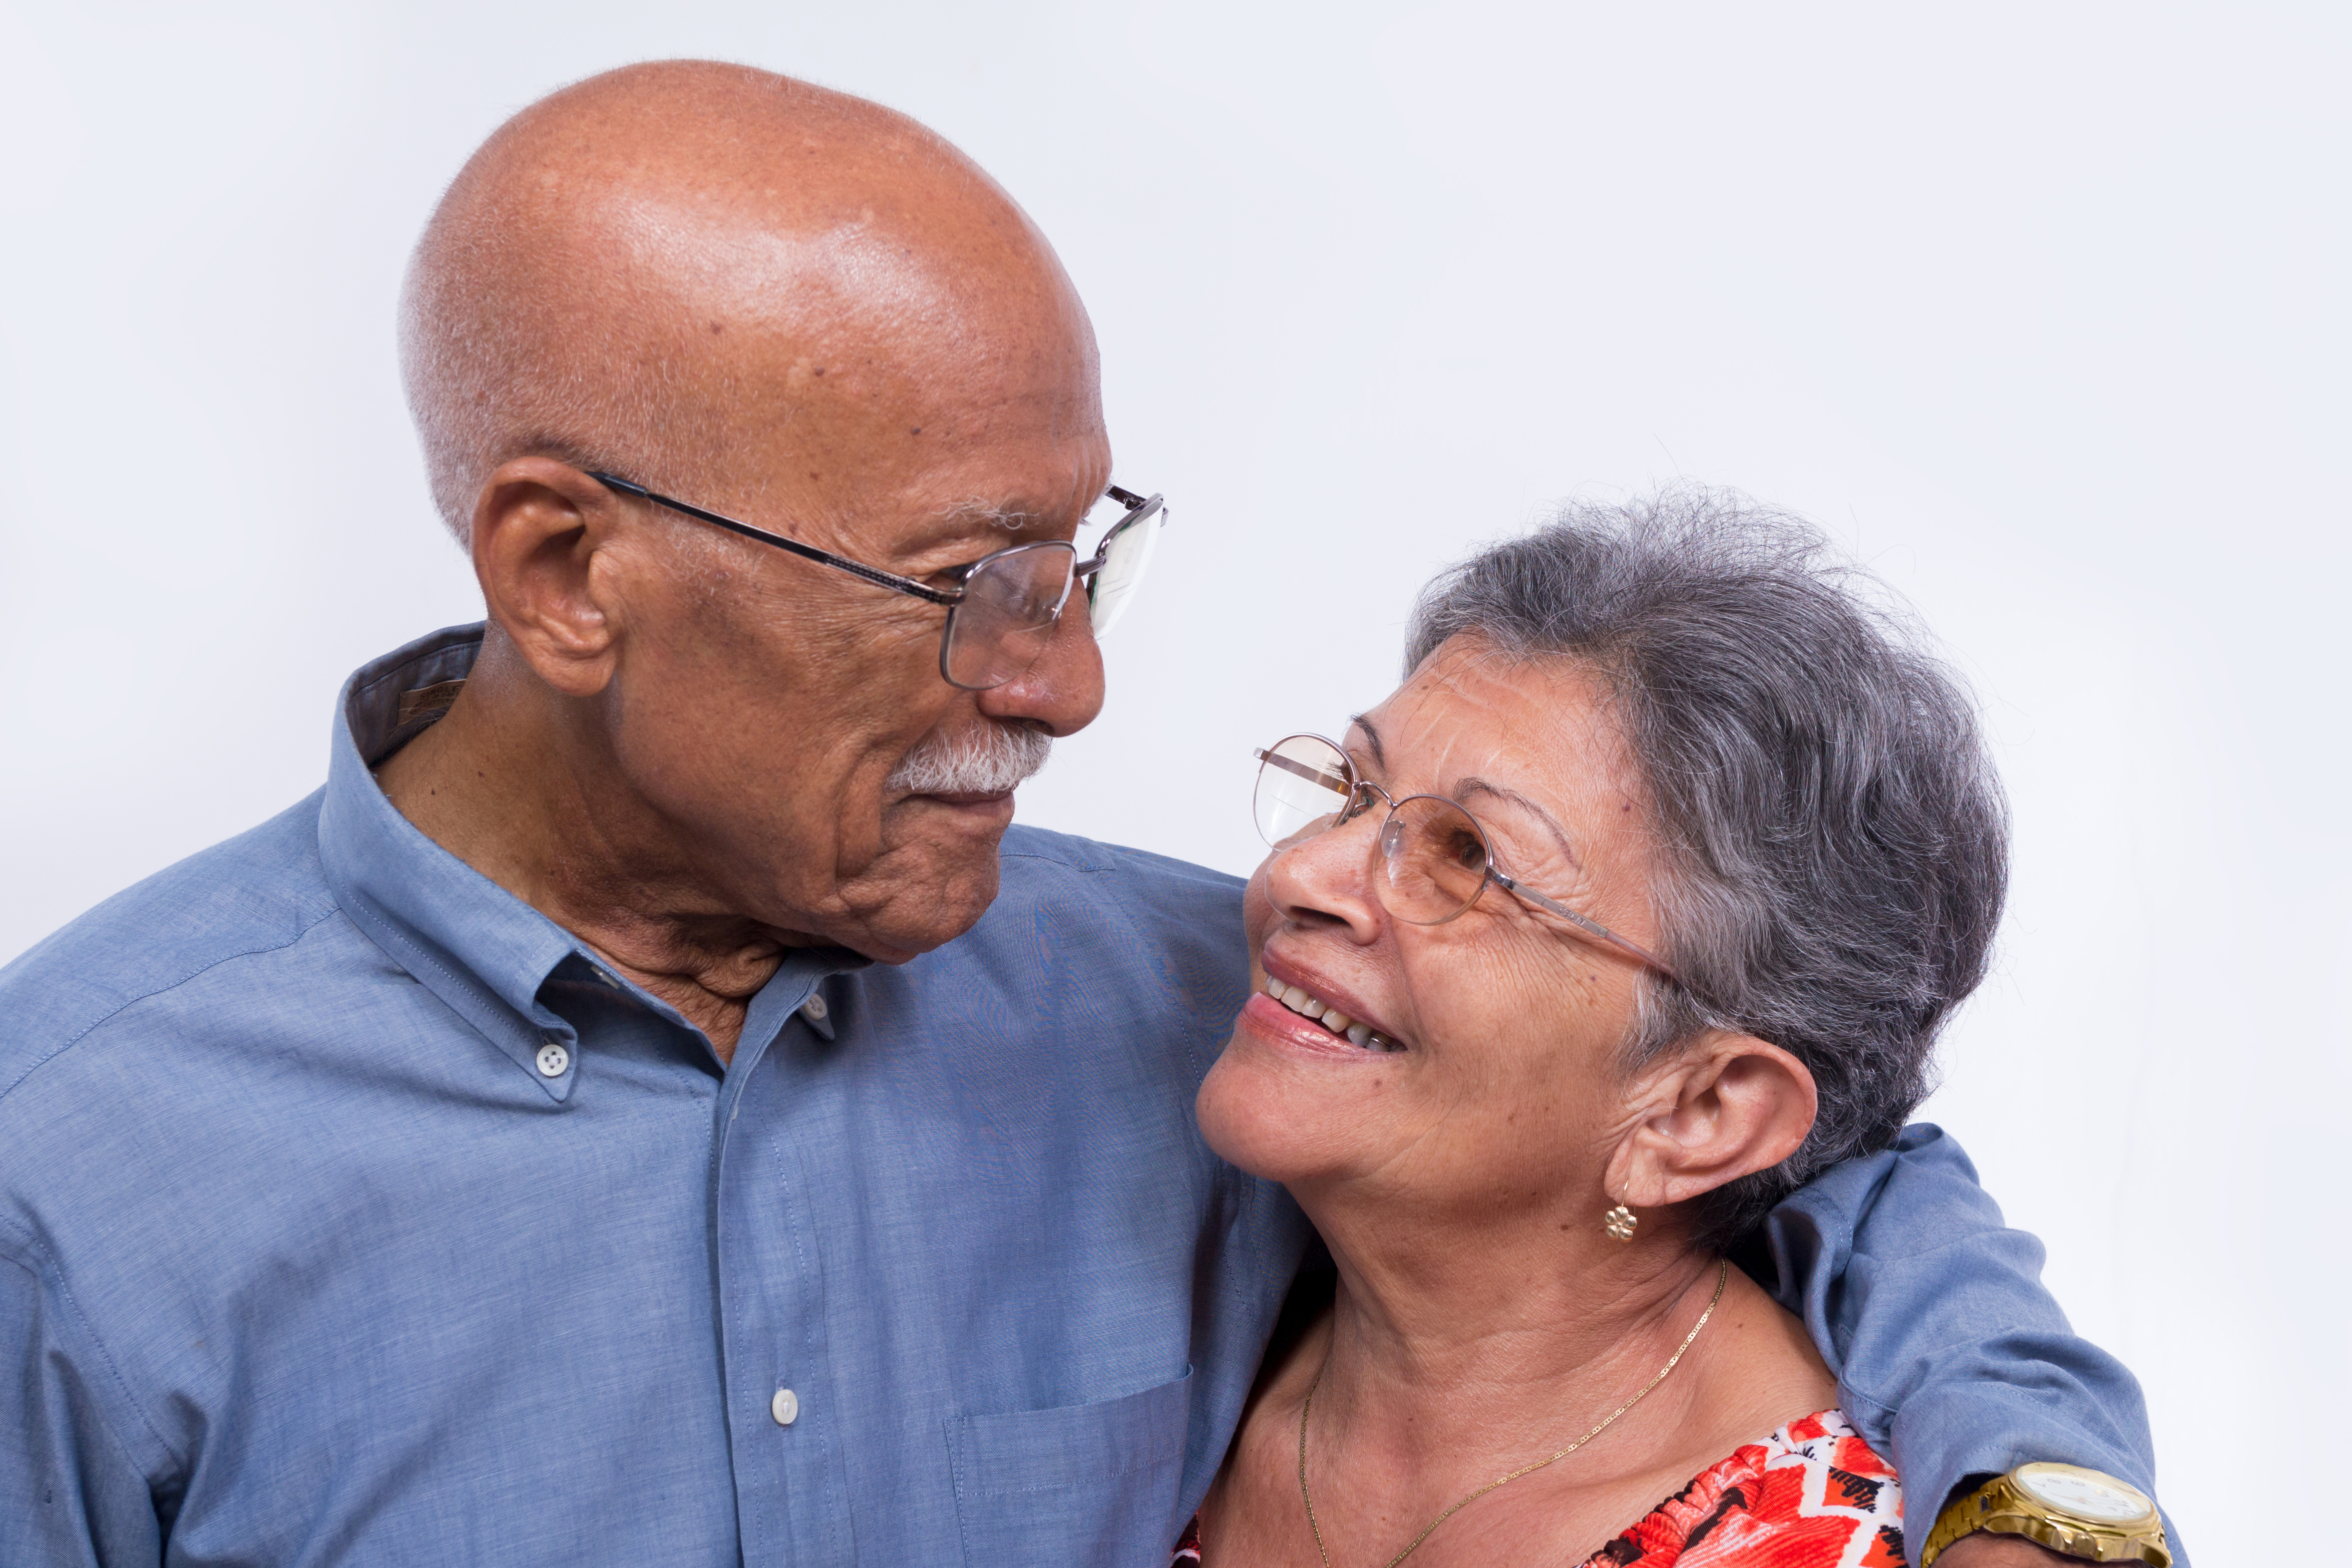 An smiling elderly couple, both wearing